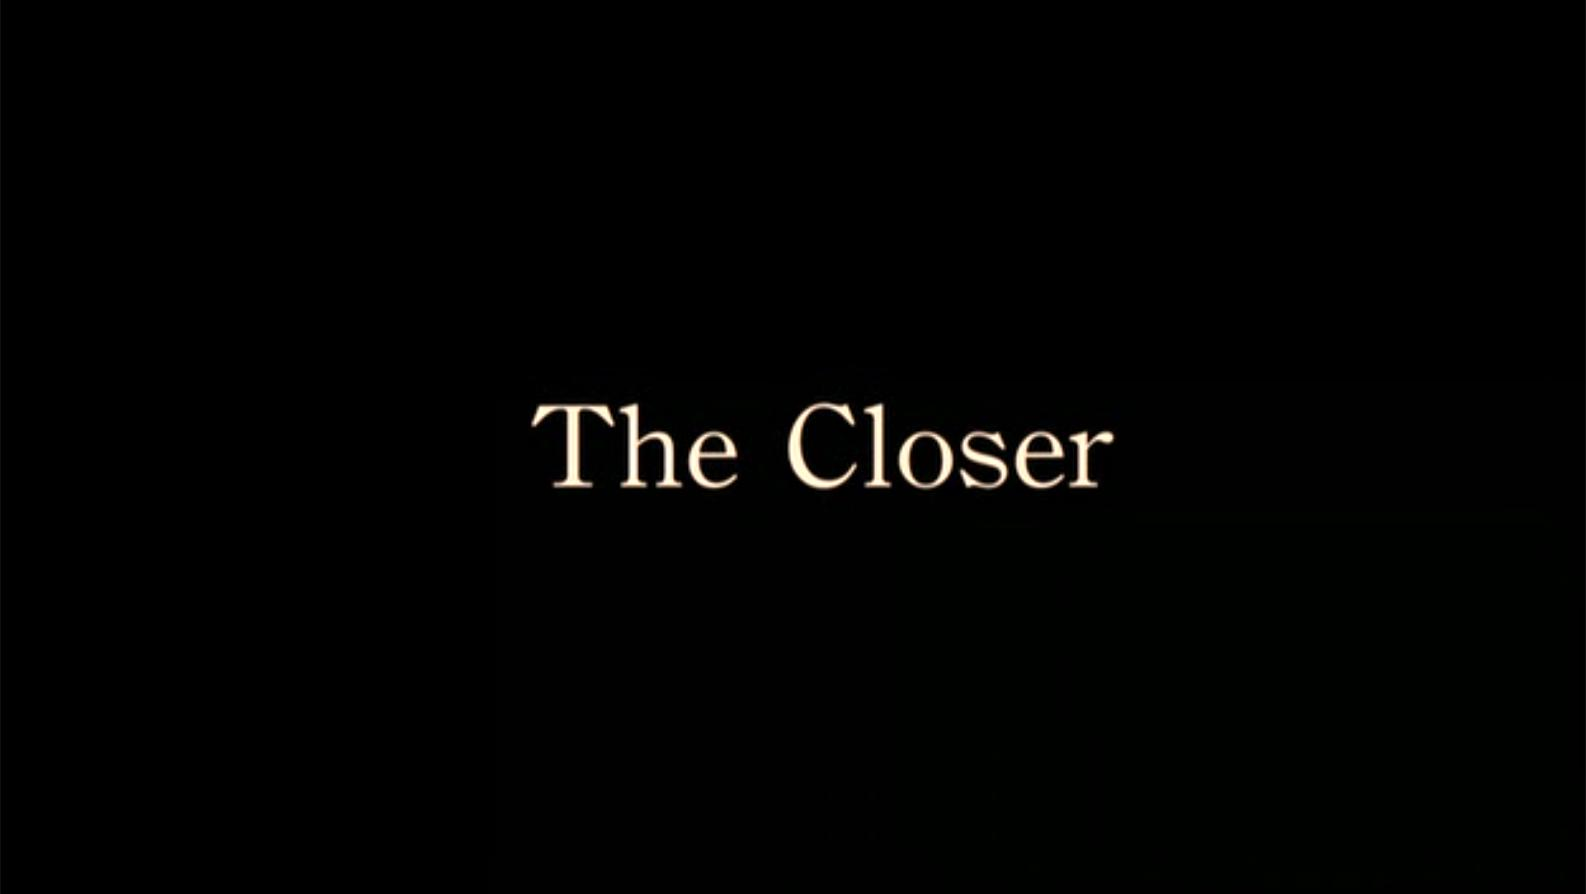 The Closer (2005)-Title.jpg